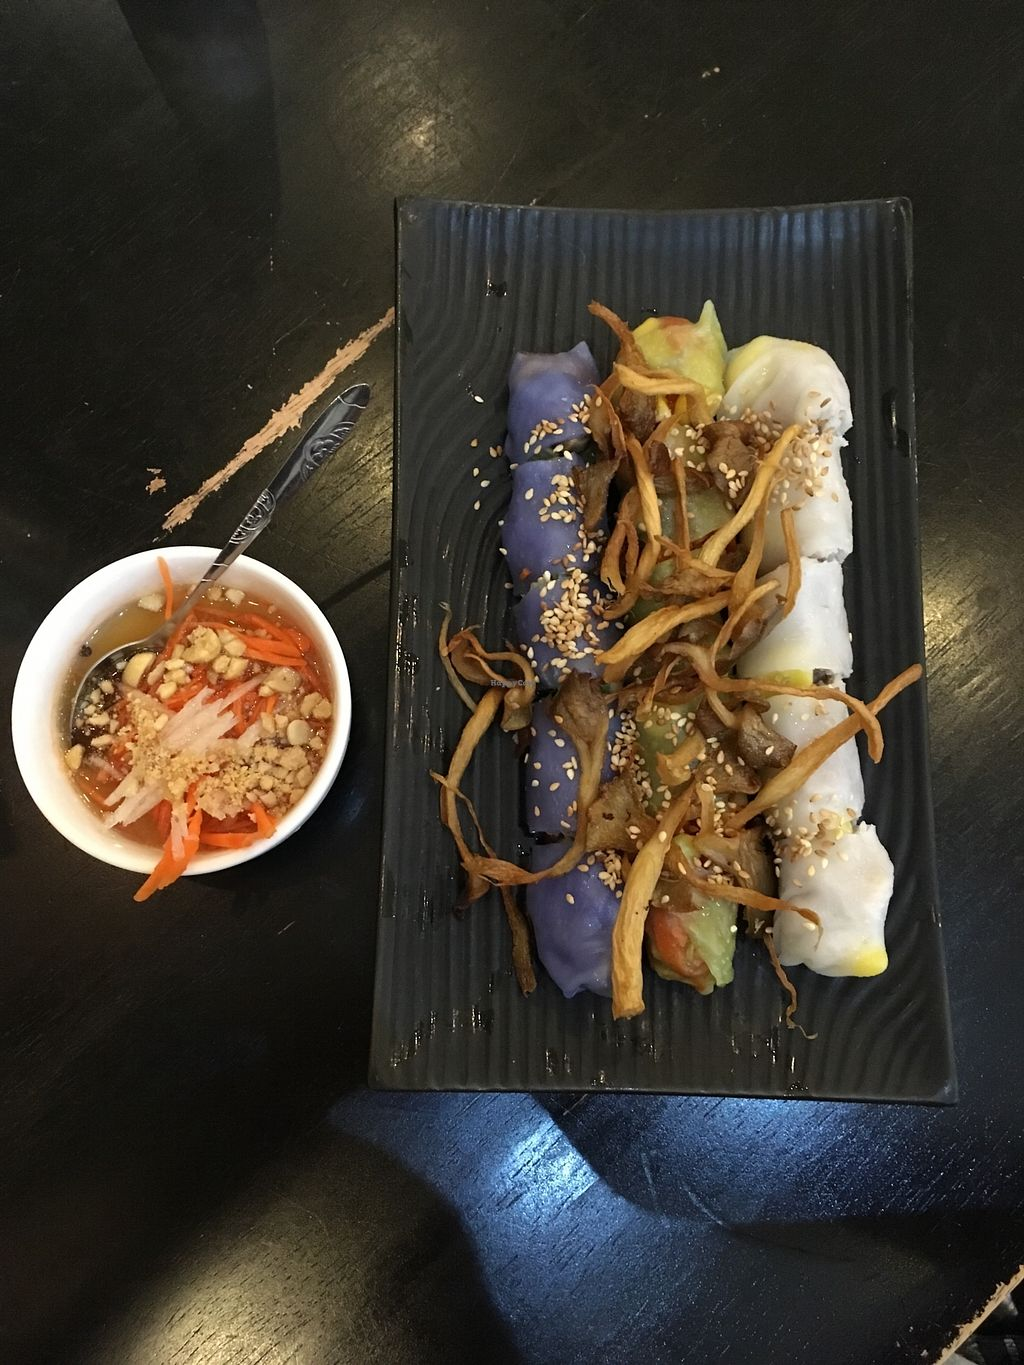 """Photo of The Plumber  by <a href=""""/members/profile/_zelisa"""">_zelisa</a> <br/>Vietnamese steamed rolls with different filllings (cabbage, veggies, mashed beans)  <br/> November 26, 2017  - <a href='/contact/abuse/image/105833/329383'>Report</a>"""